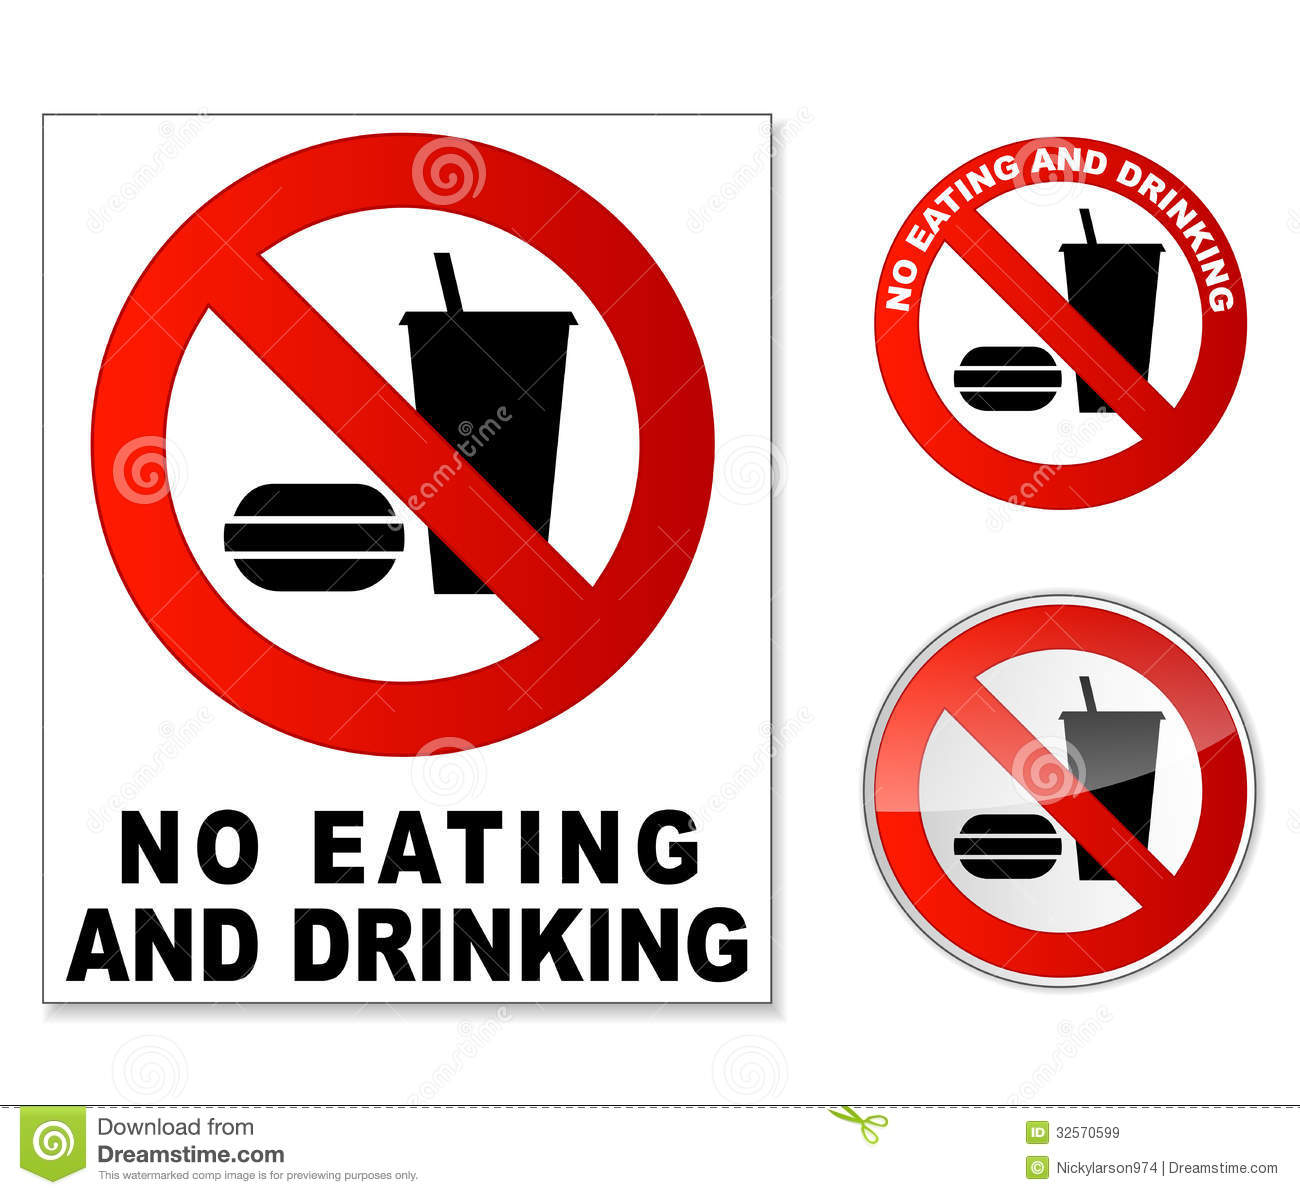 Что такое eating prohibitted 9 фотография